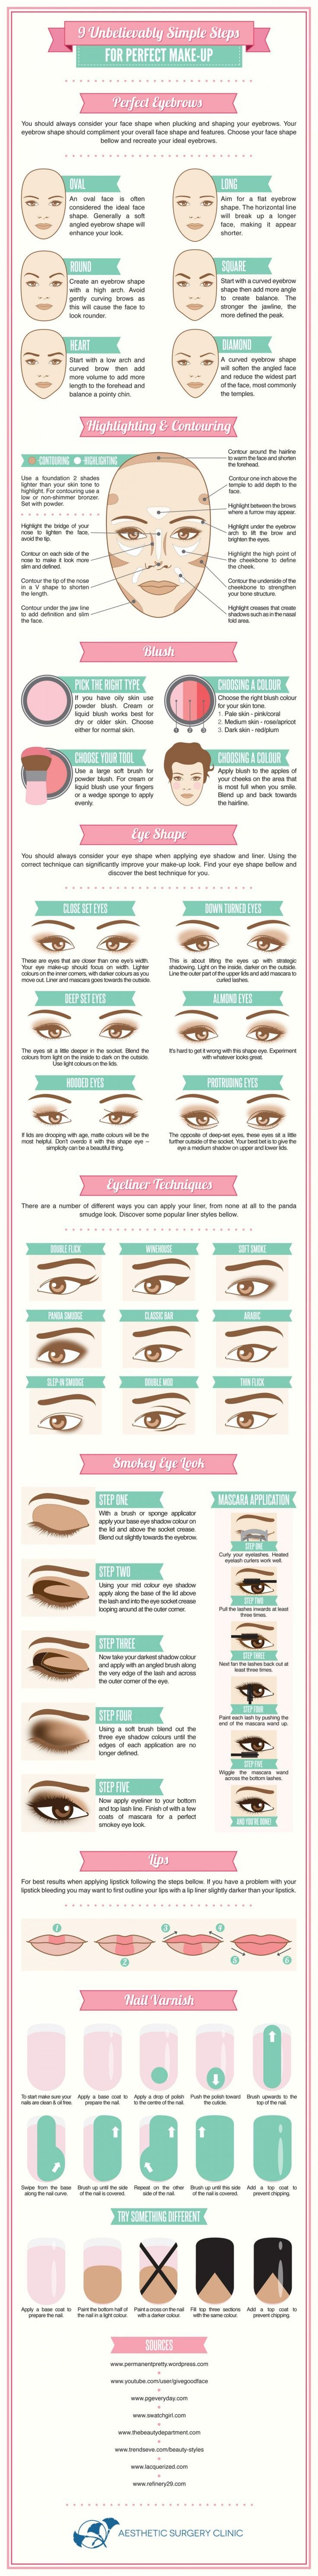 Planning a big night out when everything has to look just so?Save a few bucks on a professional makeup artist and do it yourself with this infographic that covers everything from the achieving a killer manicure to contouring and highlighting tips for the whole face.Via Visual.ly.Like infographics? So do we.Photo credit: Fotolia, Graphics credit: Canva: